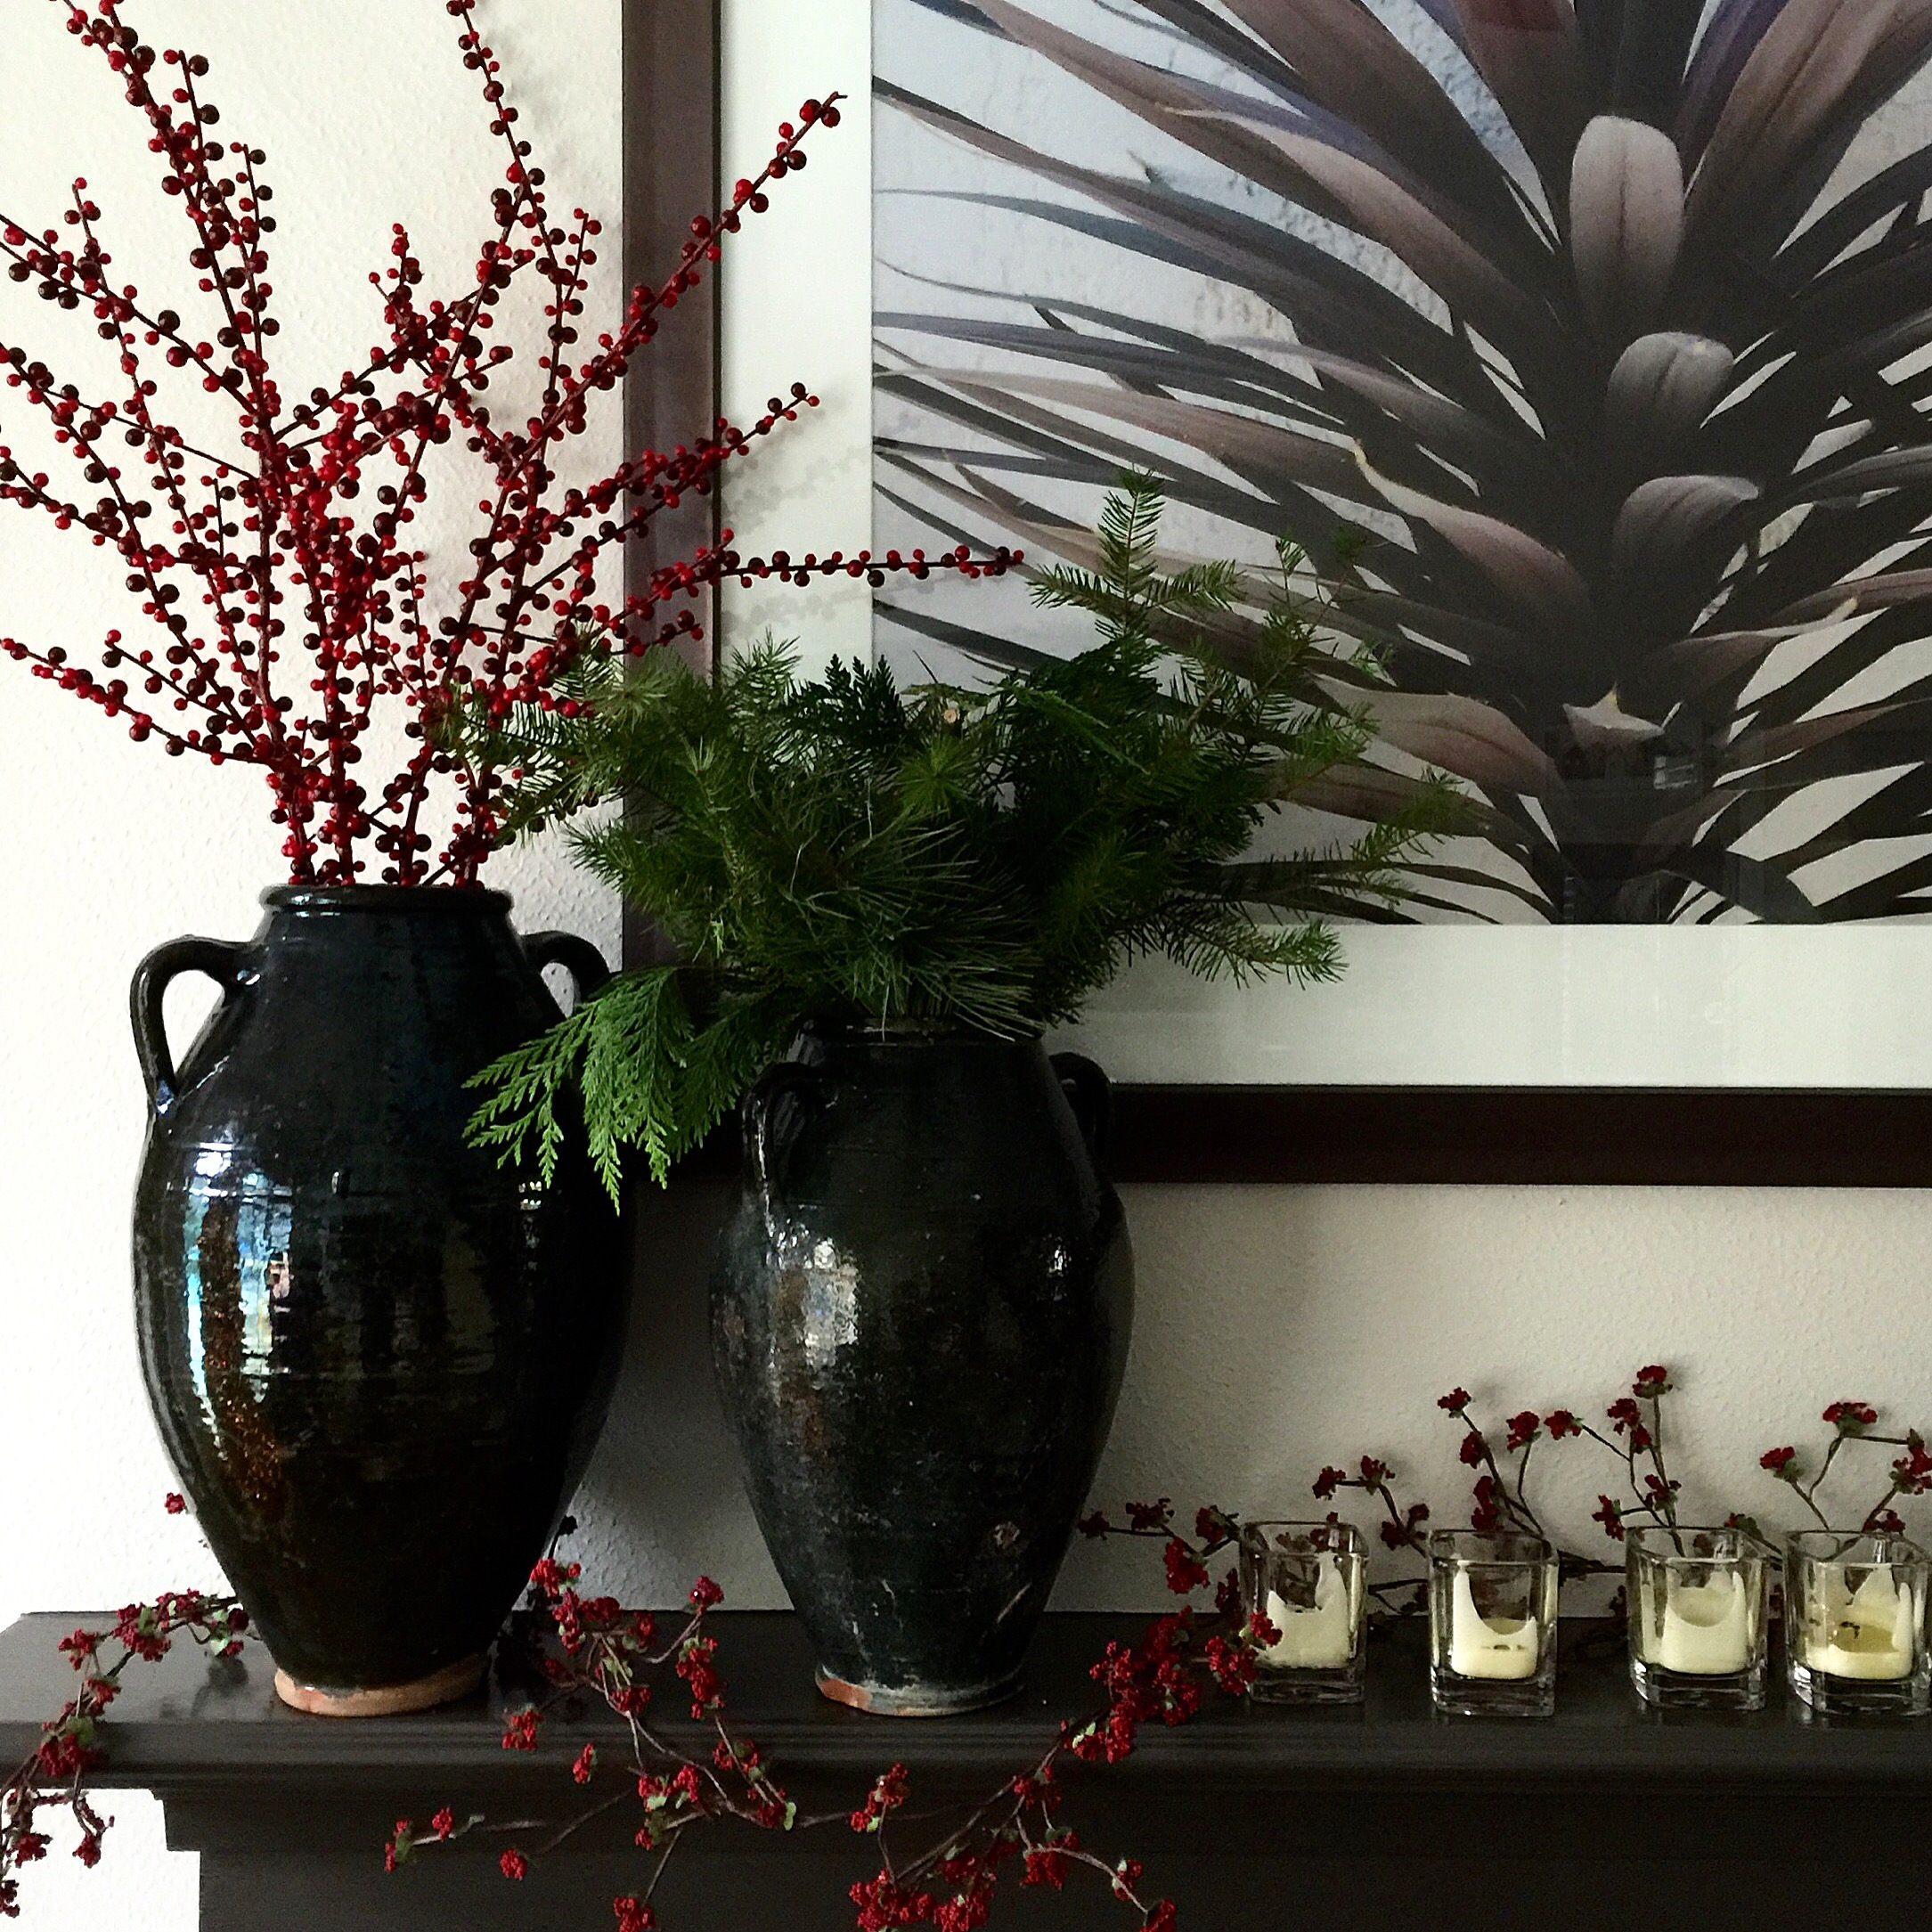 Rustic holiday mantel decor with antique olive jars